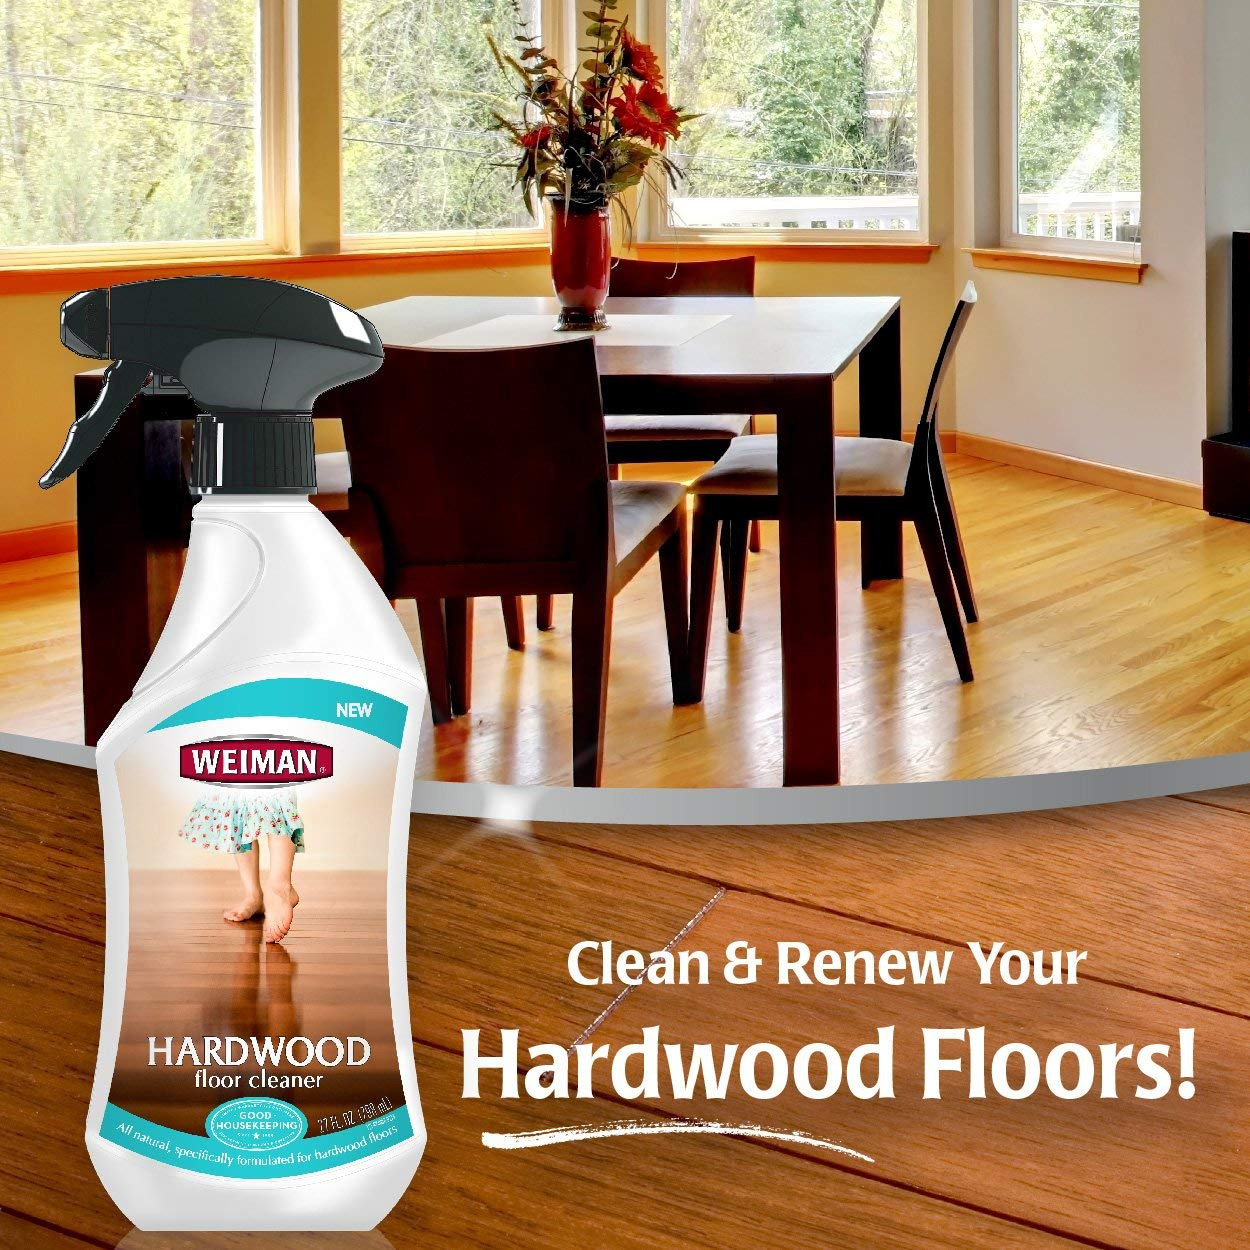 ceramic tile vs hardwood flooring cost of amazon com weiman hardwood floor cleaner surface safe no harsh inside amazon com weiman hardwood floor cleaner surface safe no harsh scent safe for use around kids and pets residue free 27 oz trigger home kitchen